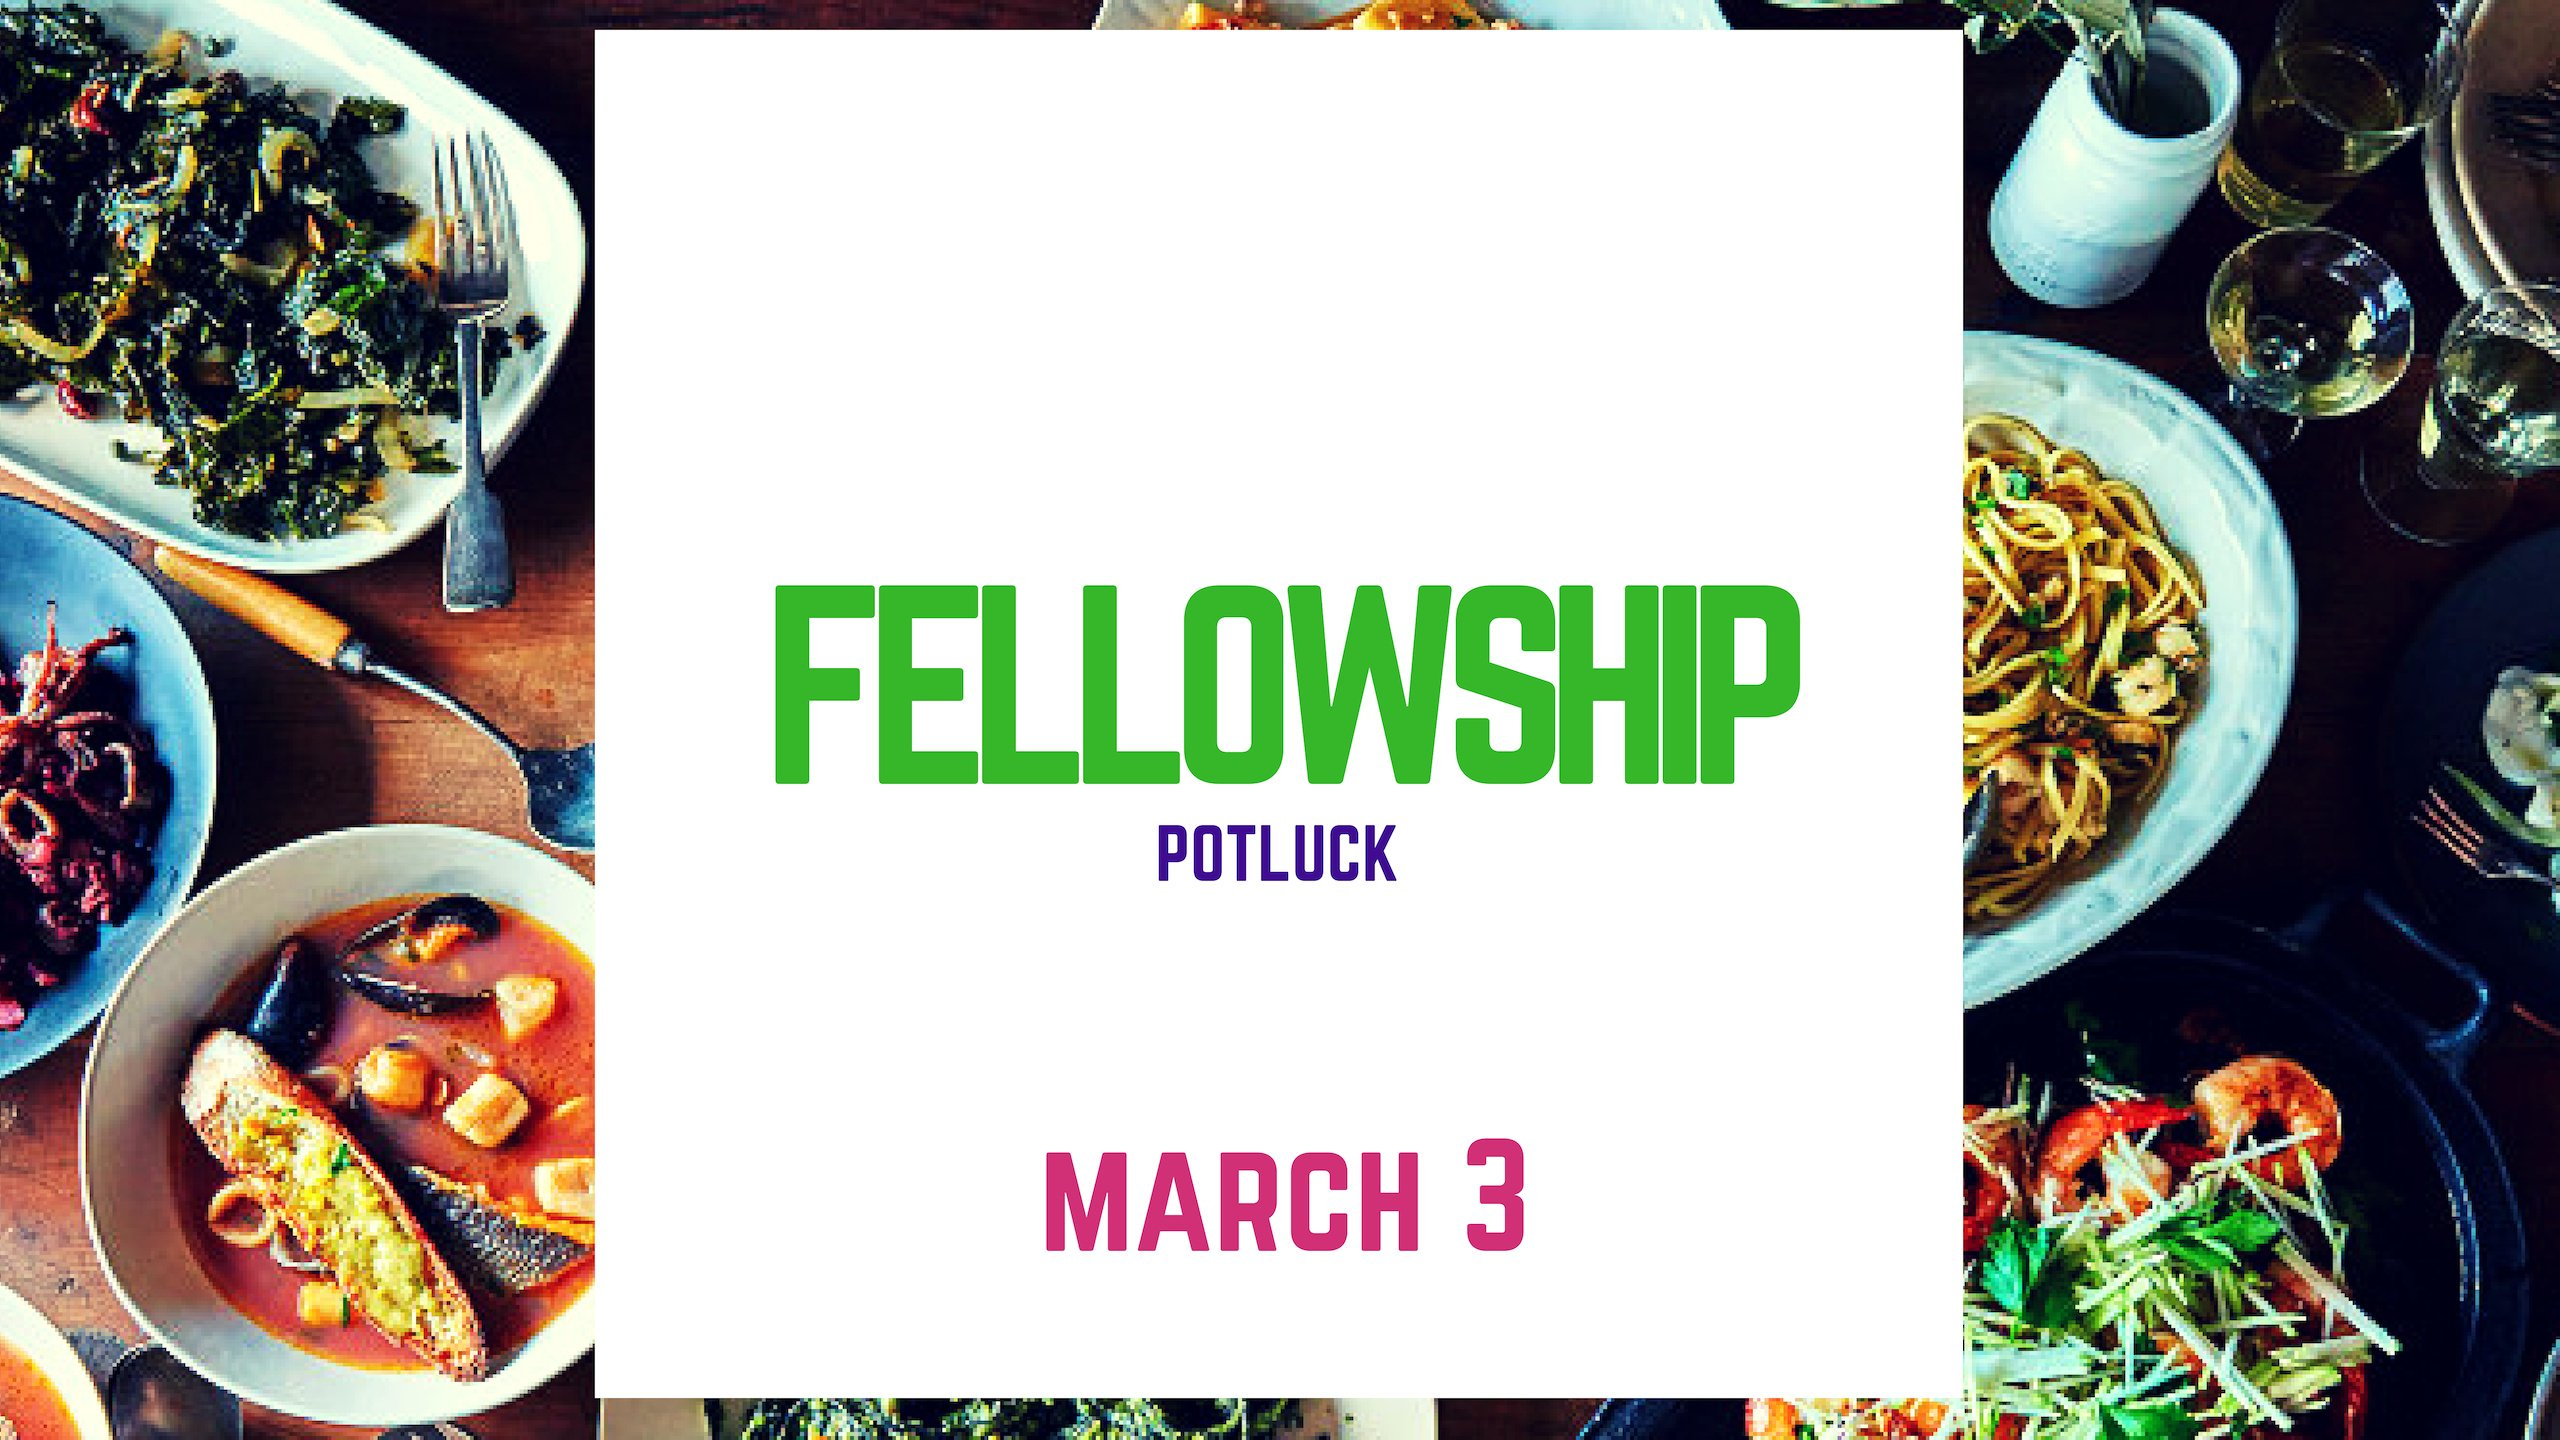 Food and Fellowship immediately following the service this Sunday.  Bring a dish or dessert to share.